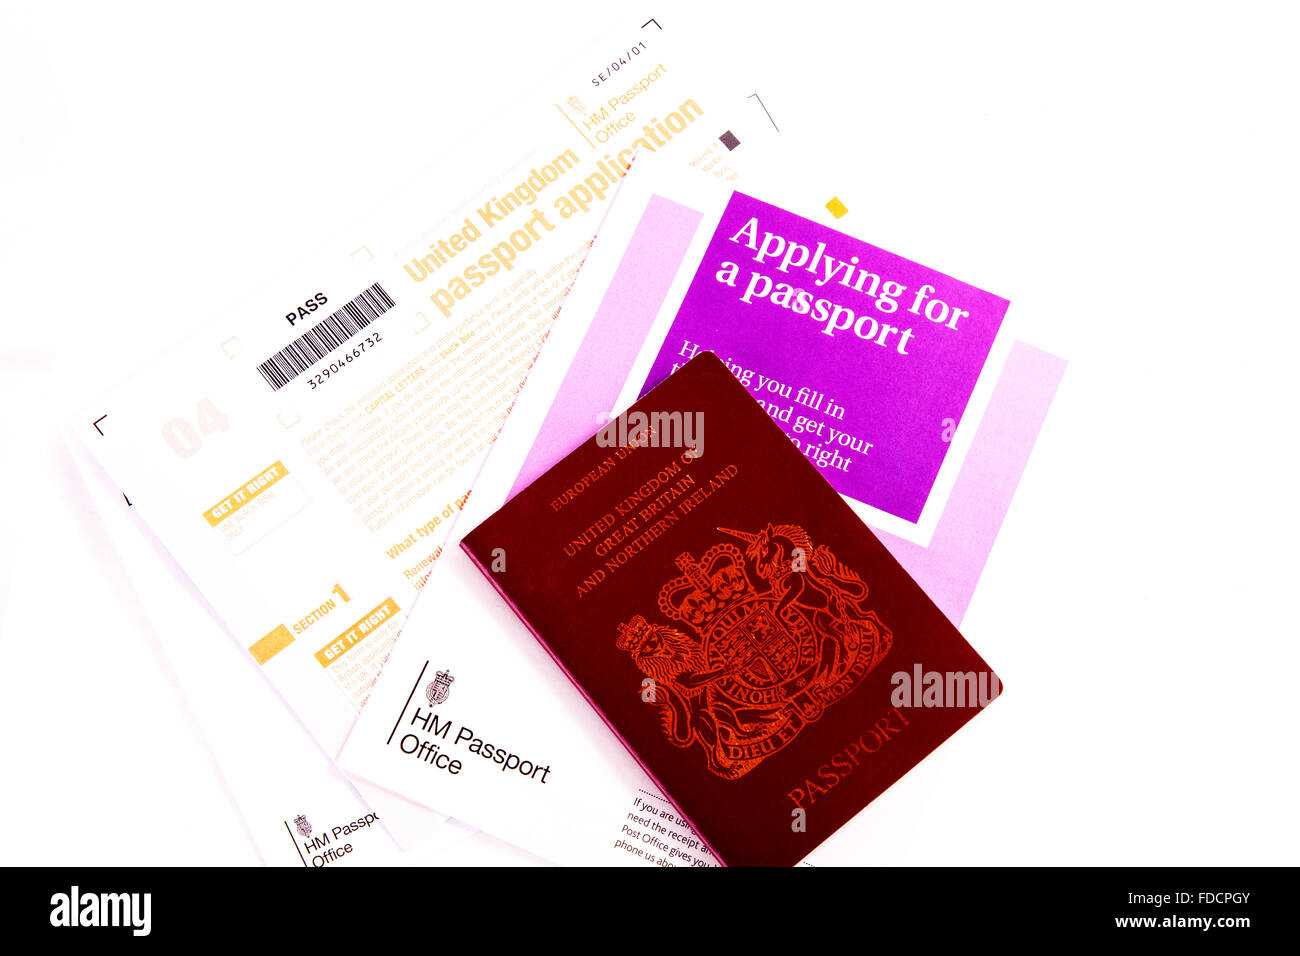 Passport application form uk applying for new passport office passport application form uk applying for new passport office travel permit cut out cutout white background isolated falaconquin